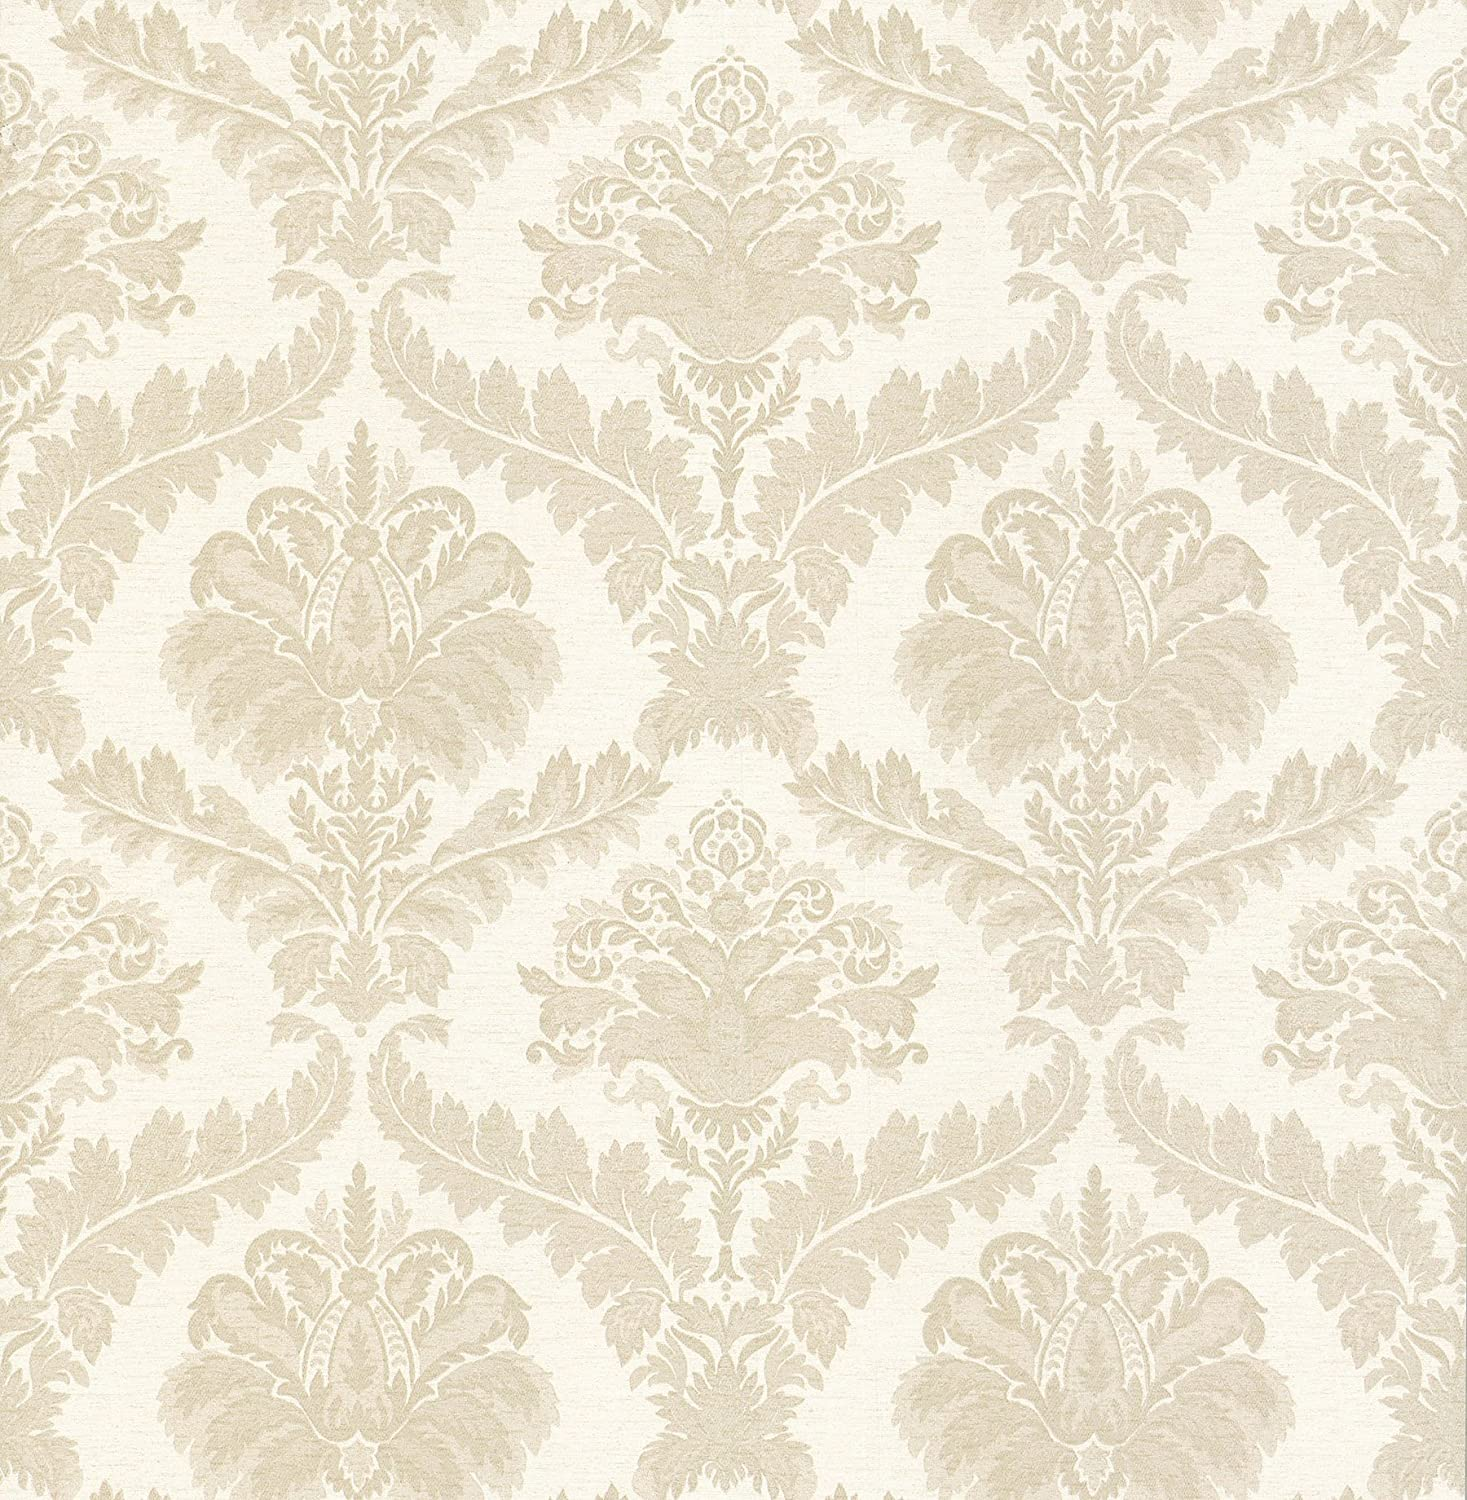 Brewster 429-6797 Scrolls and Damask Wallpaper Cream 20.5-Inch by 396-Inch